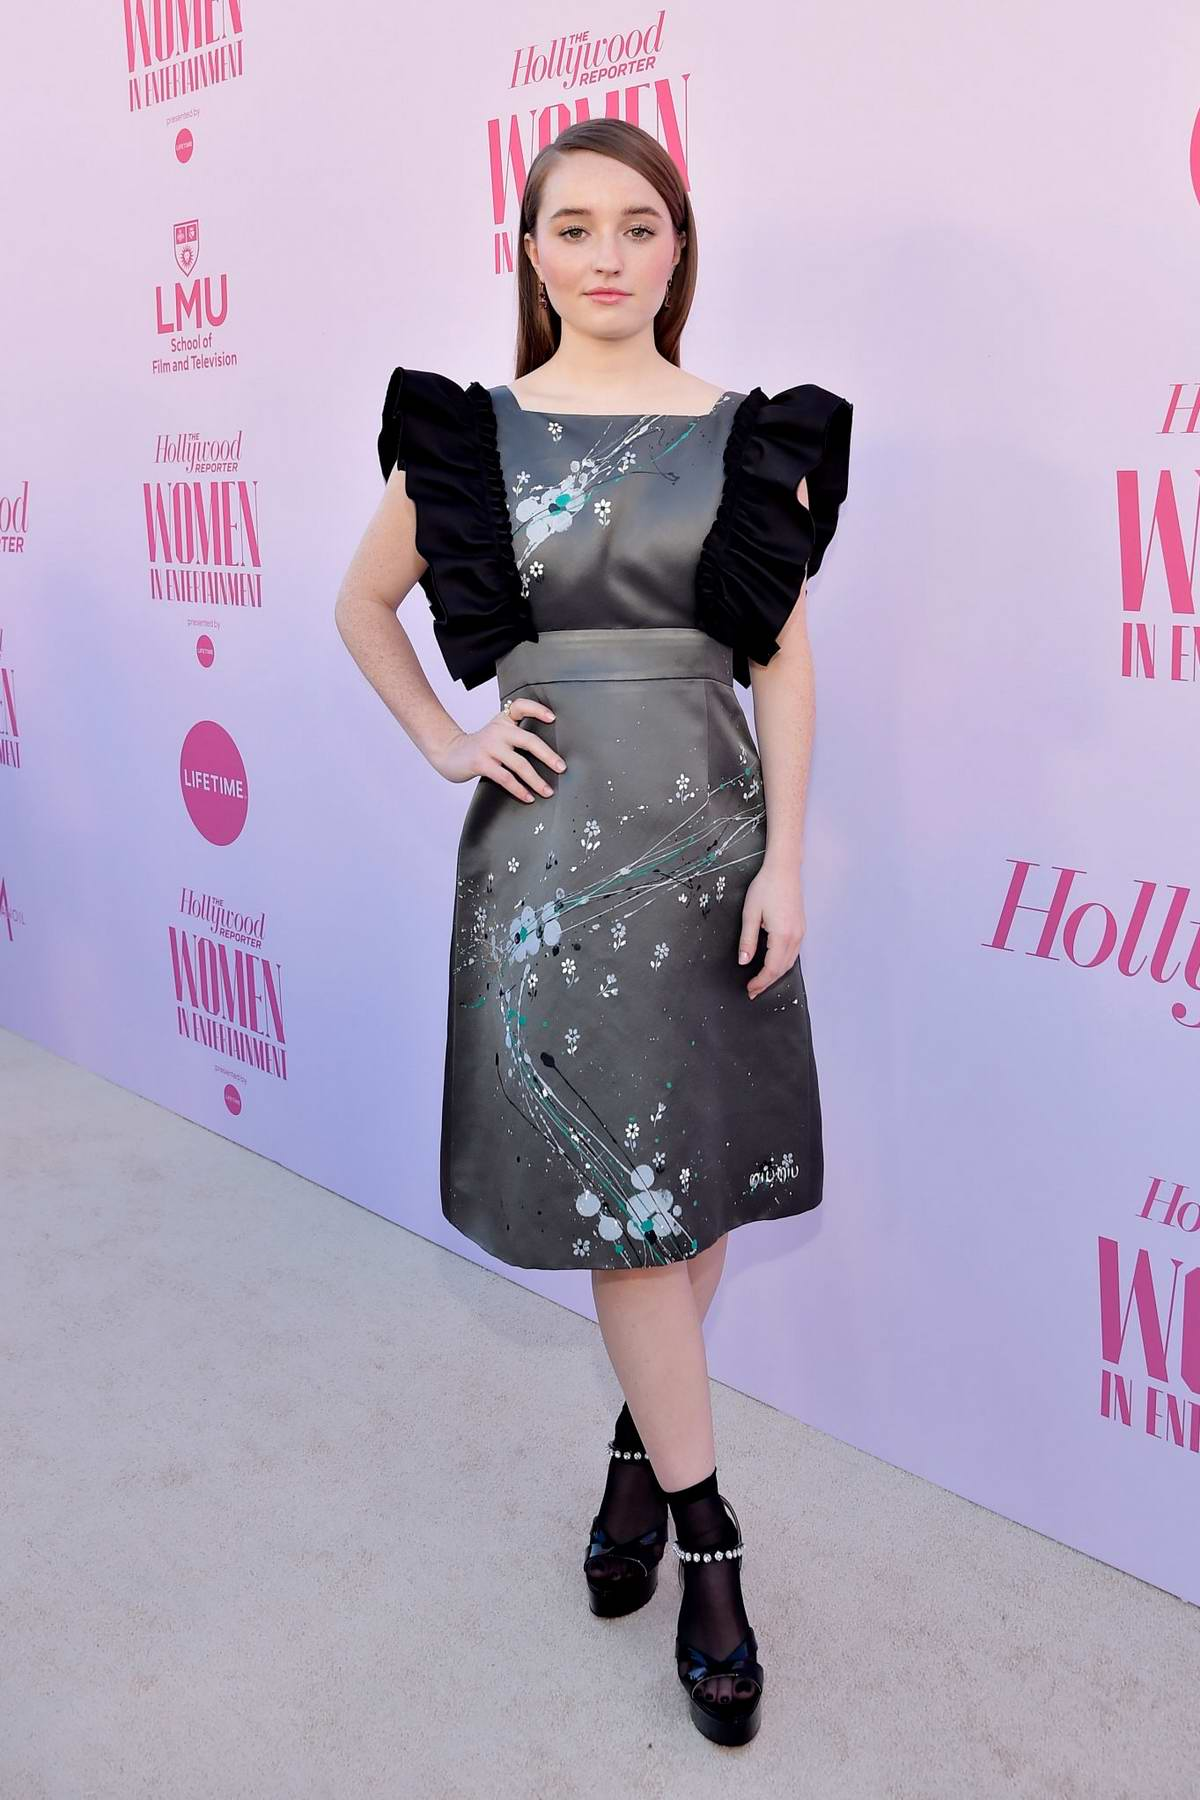 Kaitlyn Dever attends The Hollywood Reporter's Power 100 Women in Entertainment in Hollywood, California